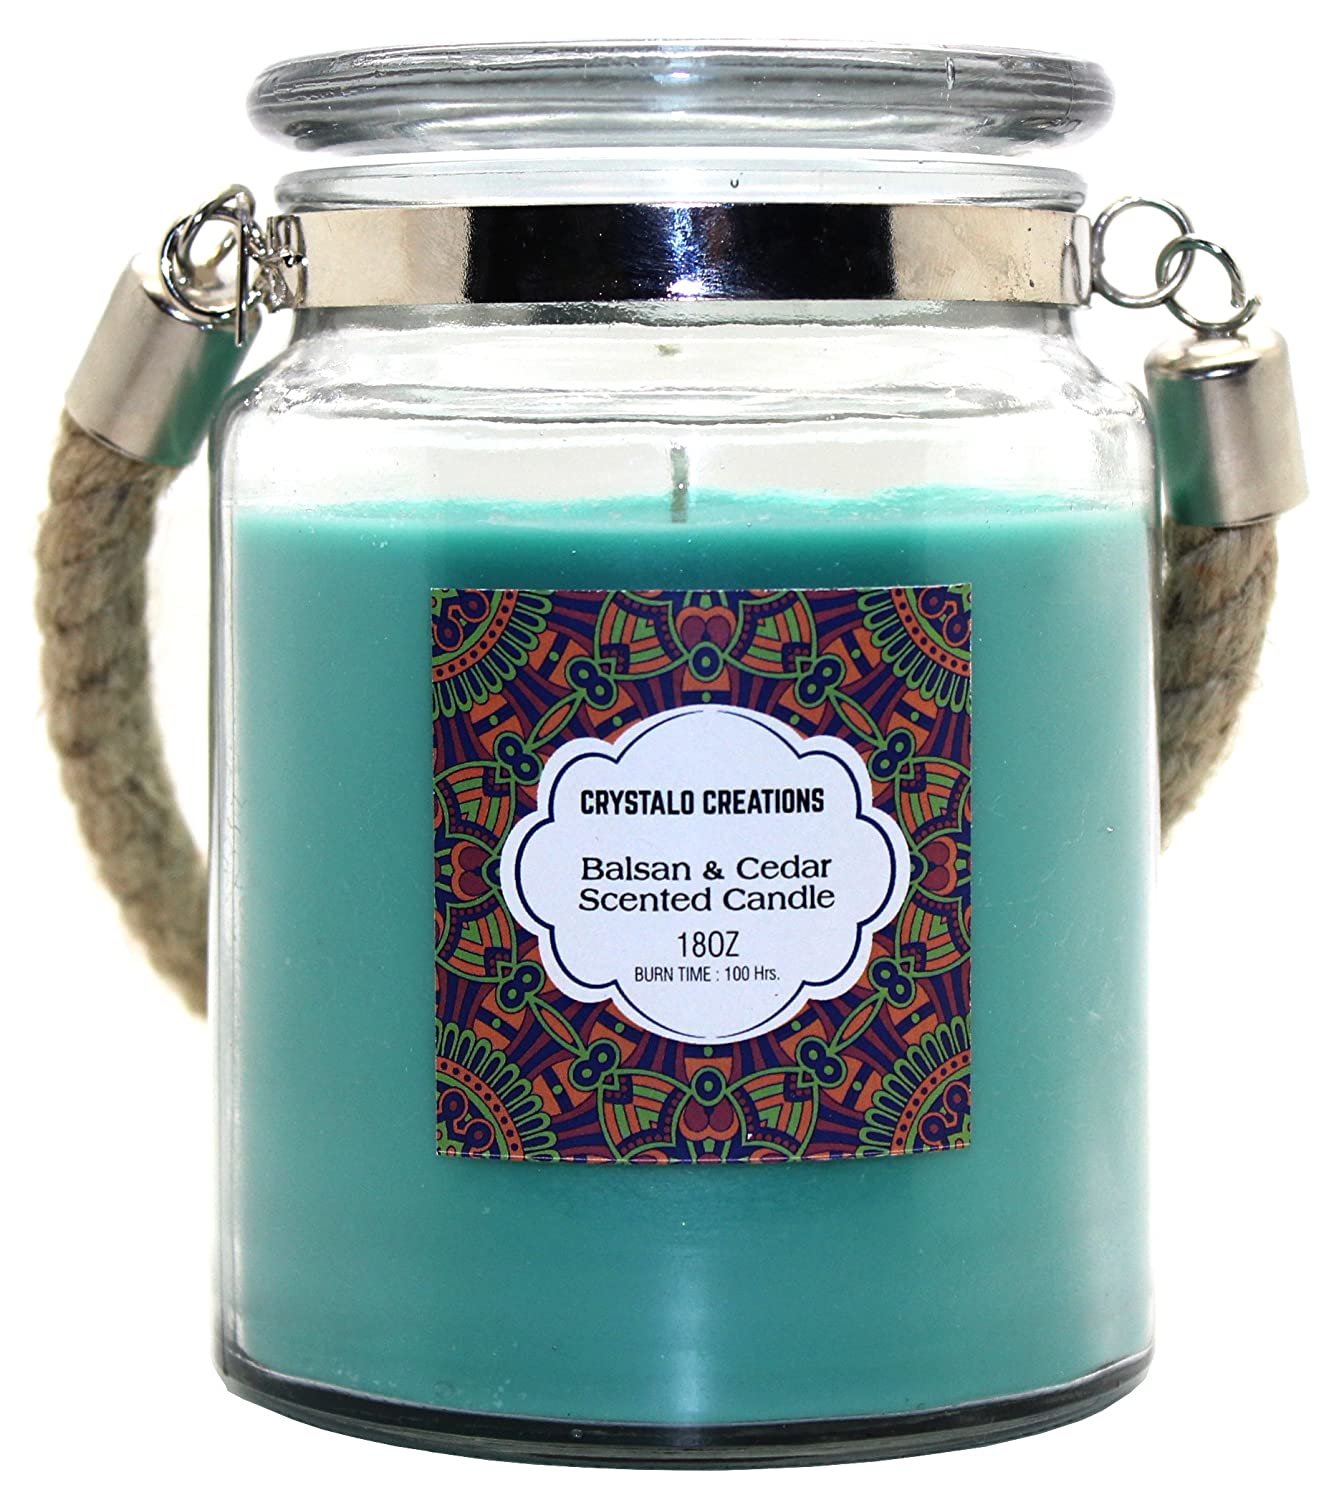 18 Ounce Crystalo Creations Balsam /& Cedar Scented Candle with Rope Handle